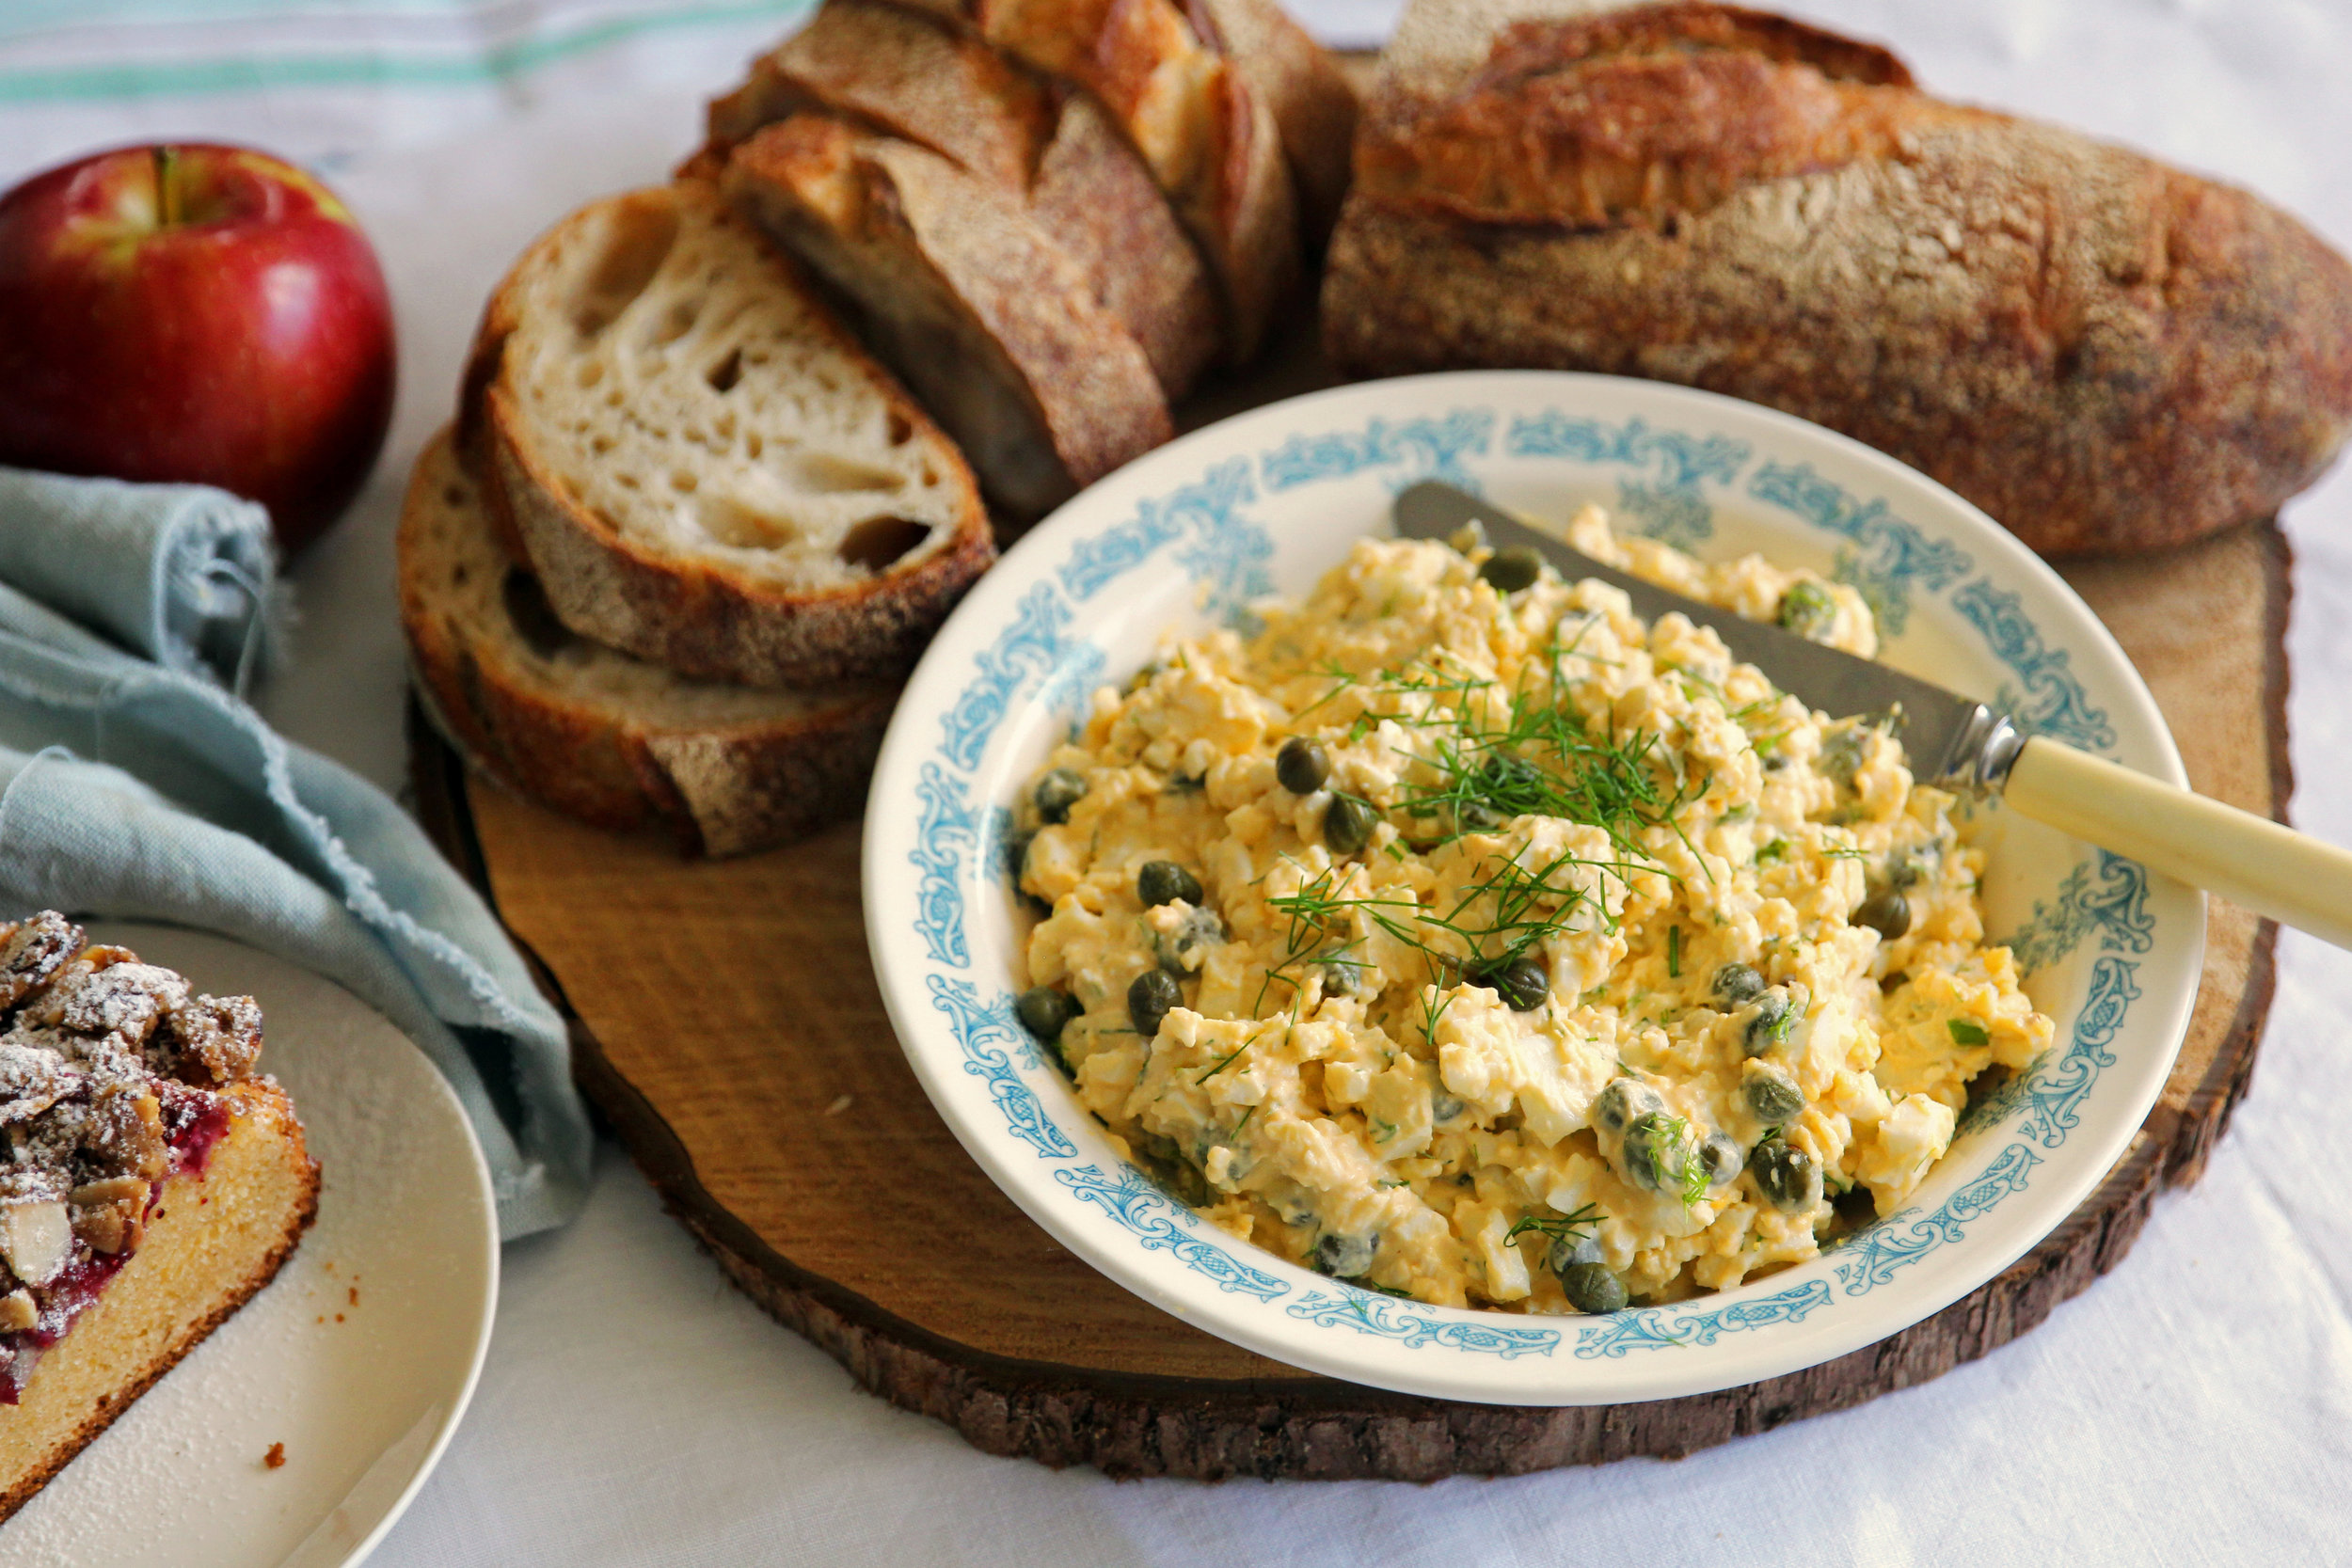 NAUTILUS_VINTAGE_High Res_Egg mayo Dill Sandwiches.jpg